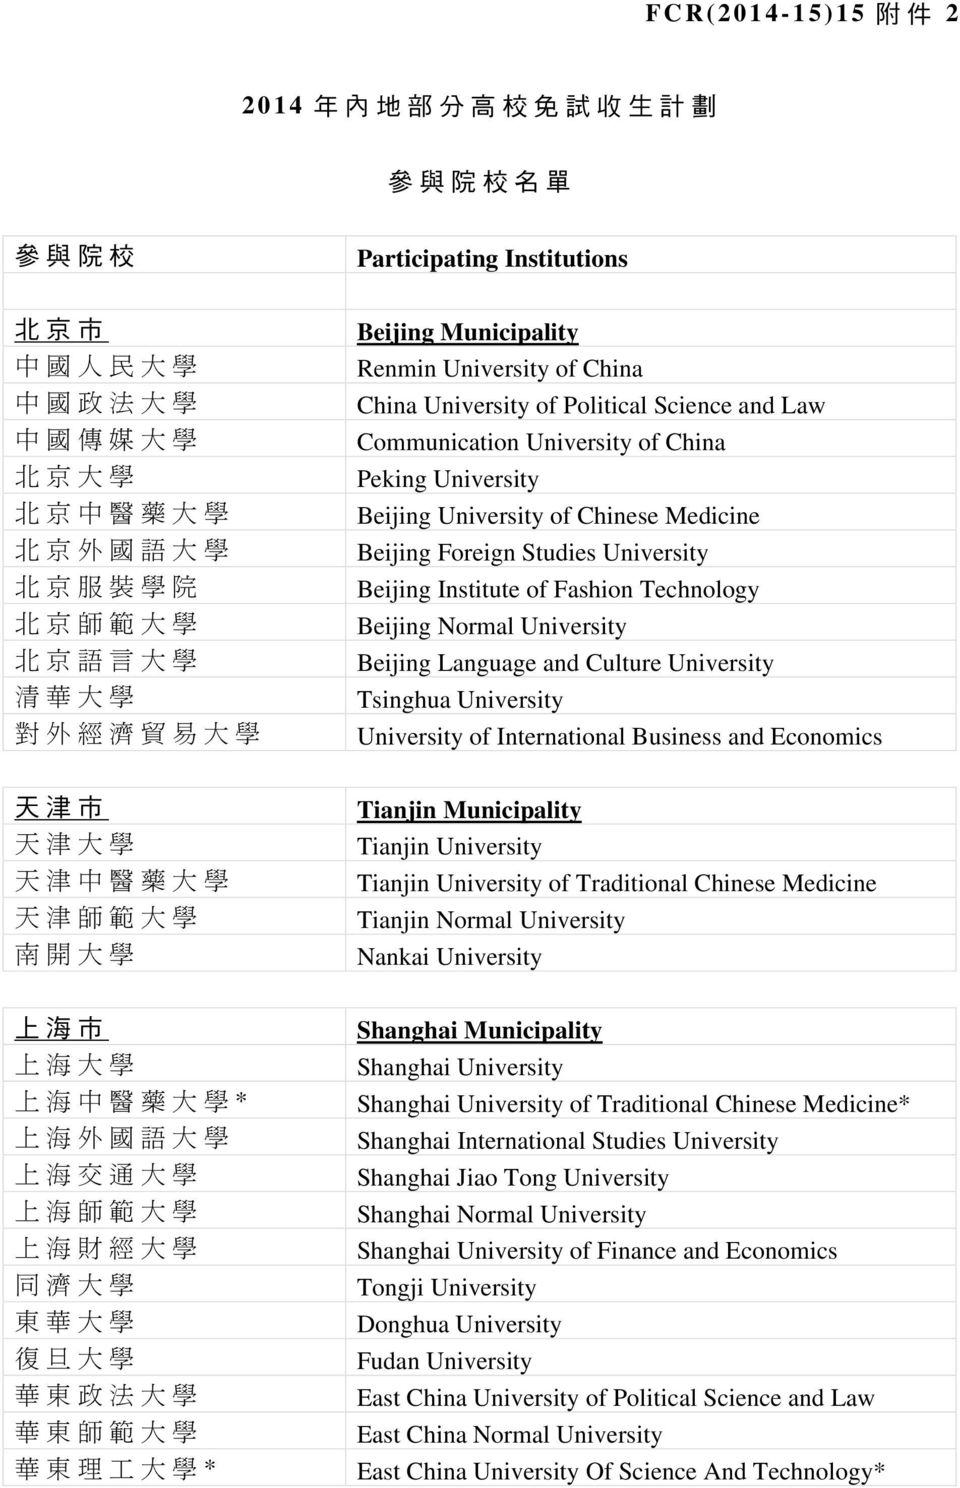 Medicine Beijing Foreign Studies University Beijing Institute of Fashion Technology Beijing Normal University Beijing Language and Culture University Tsinghua University University of International